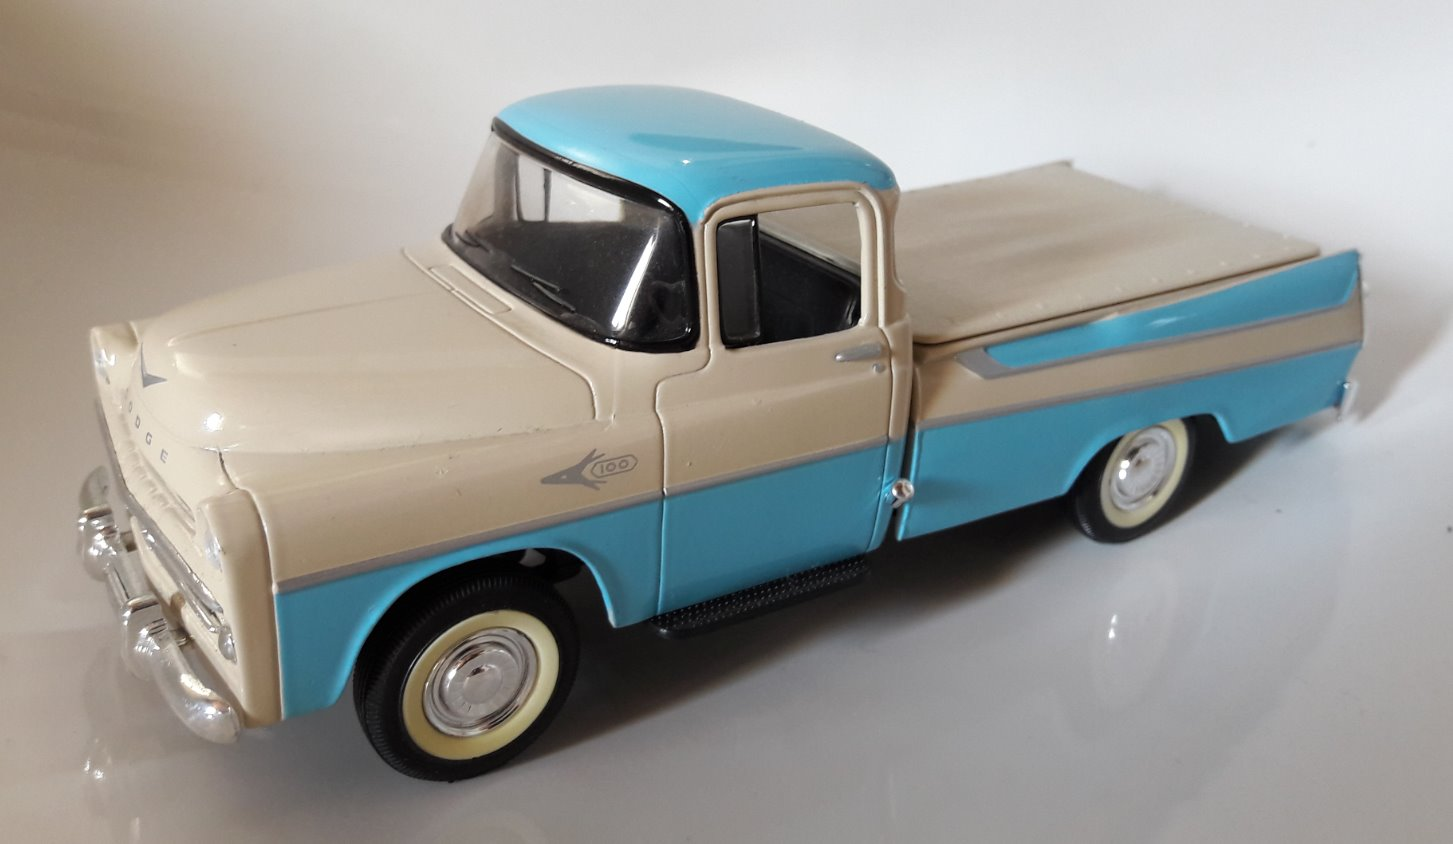 Dodge Pick-Up Toy Car, Die Cast, And Hot Wheels (1957) front image (front cover)